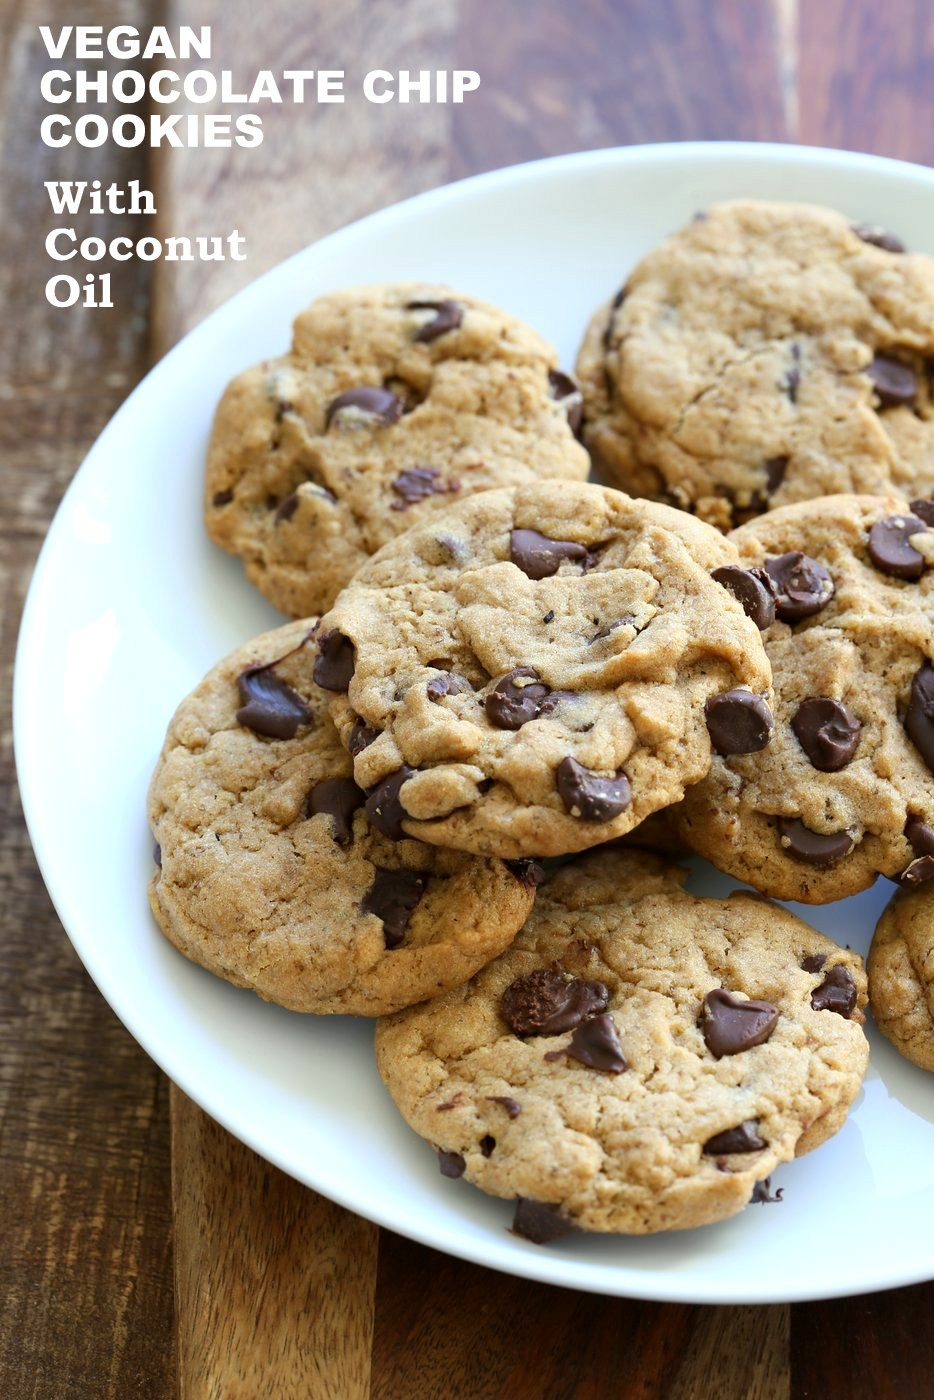 Vegan Cookie Recipes  Vegan Chocolate Chip Cookies with Coconut Oil Palm Oil